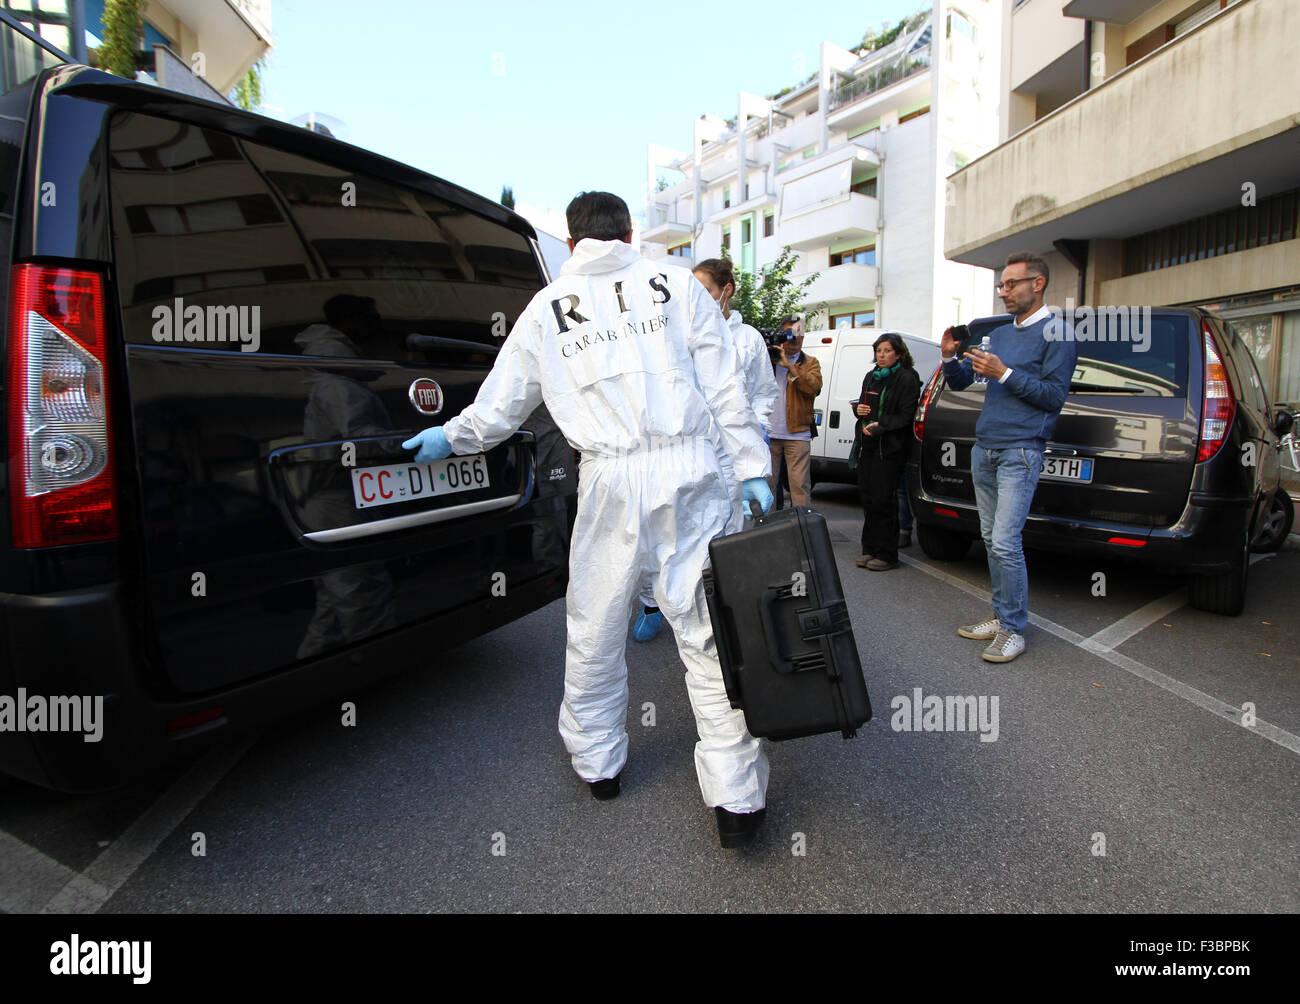 ITALY, Pordenone: Forensic Police arrived to examinate the house of suspect Giosu Ruotolo during the case Double - Stock Image